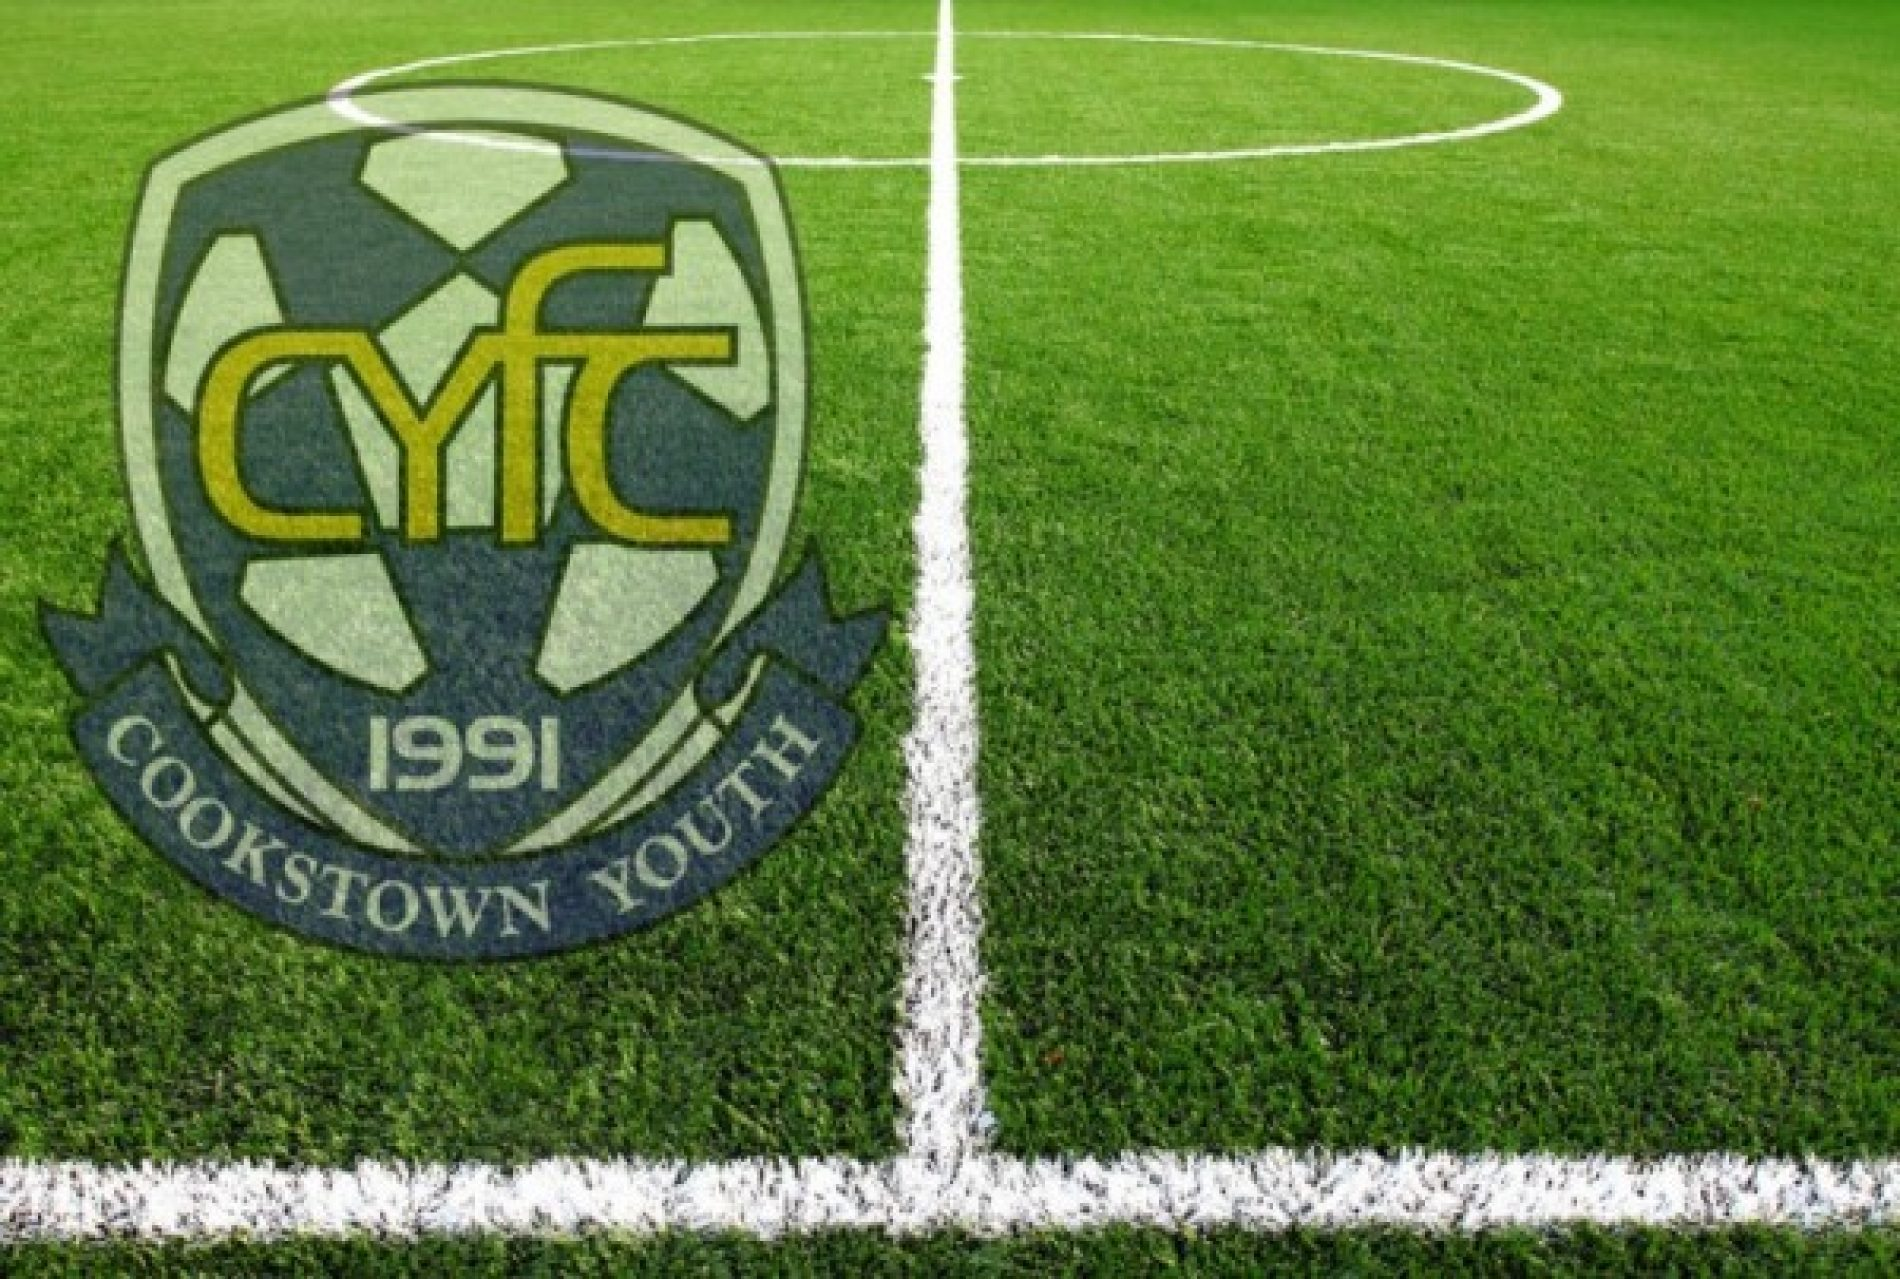 CYFC UPDATE FOR SATURDAY 13th FEB 2016